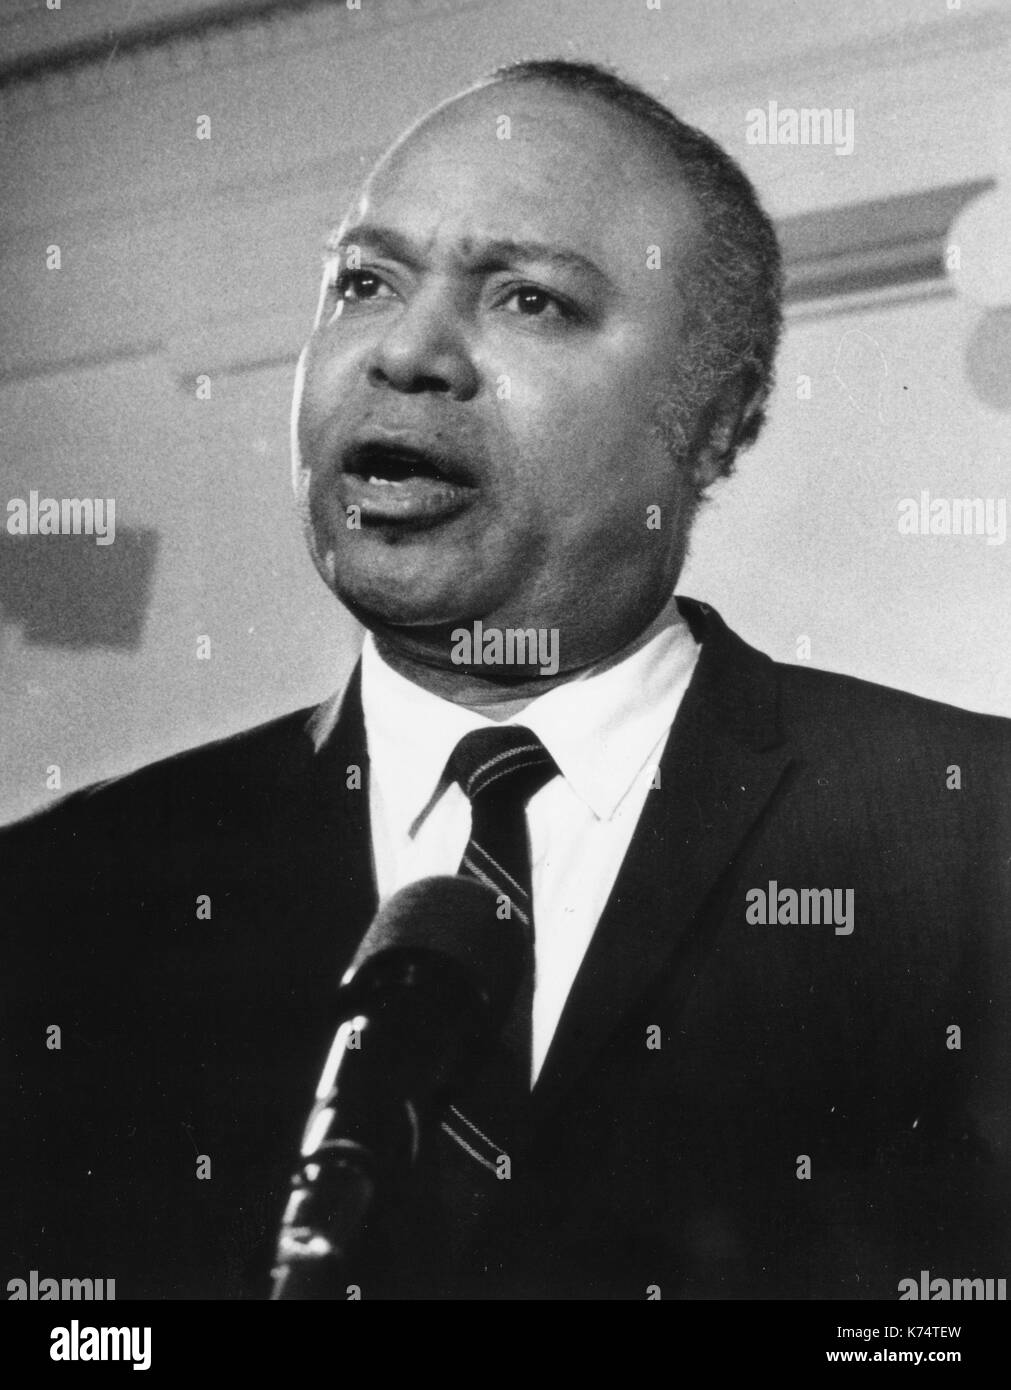 James Farmer, civil rights activist, co-founder of CORE (Congress of Racial Equality) and Assistant Secretary of the Department of Health, Education & Welfare during Richard Nixon's first term, Washington, DC, 1969. - Stock Image